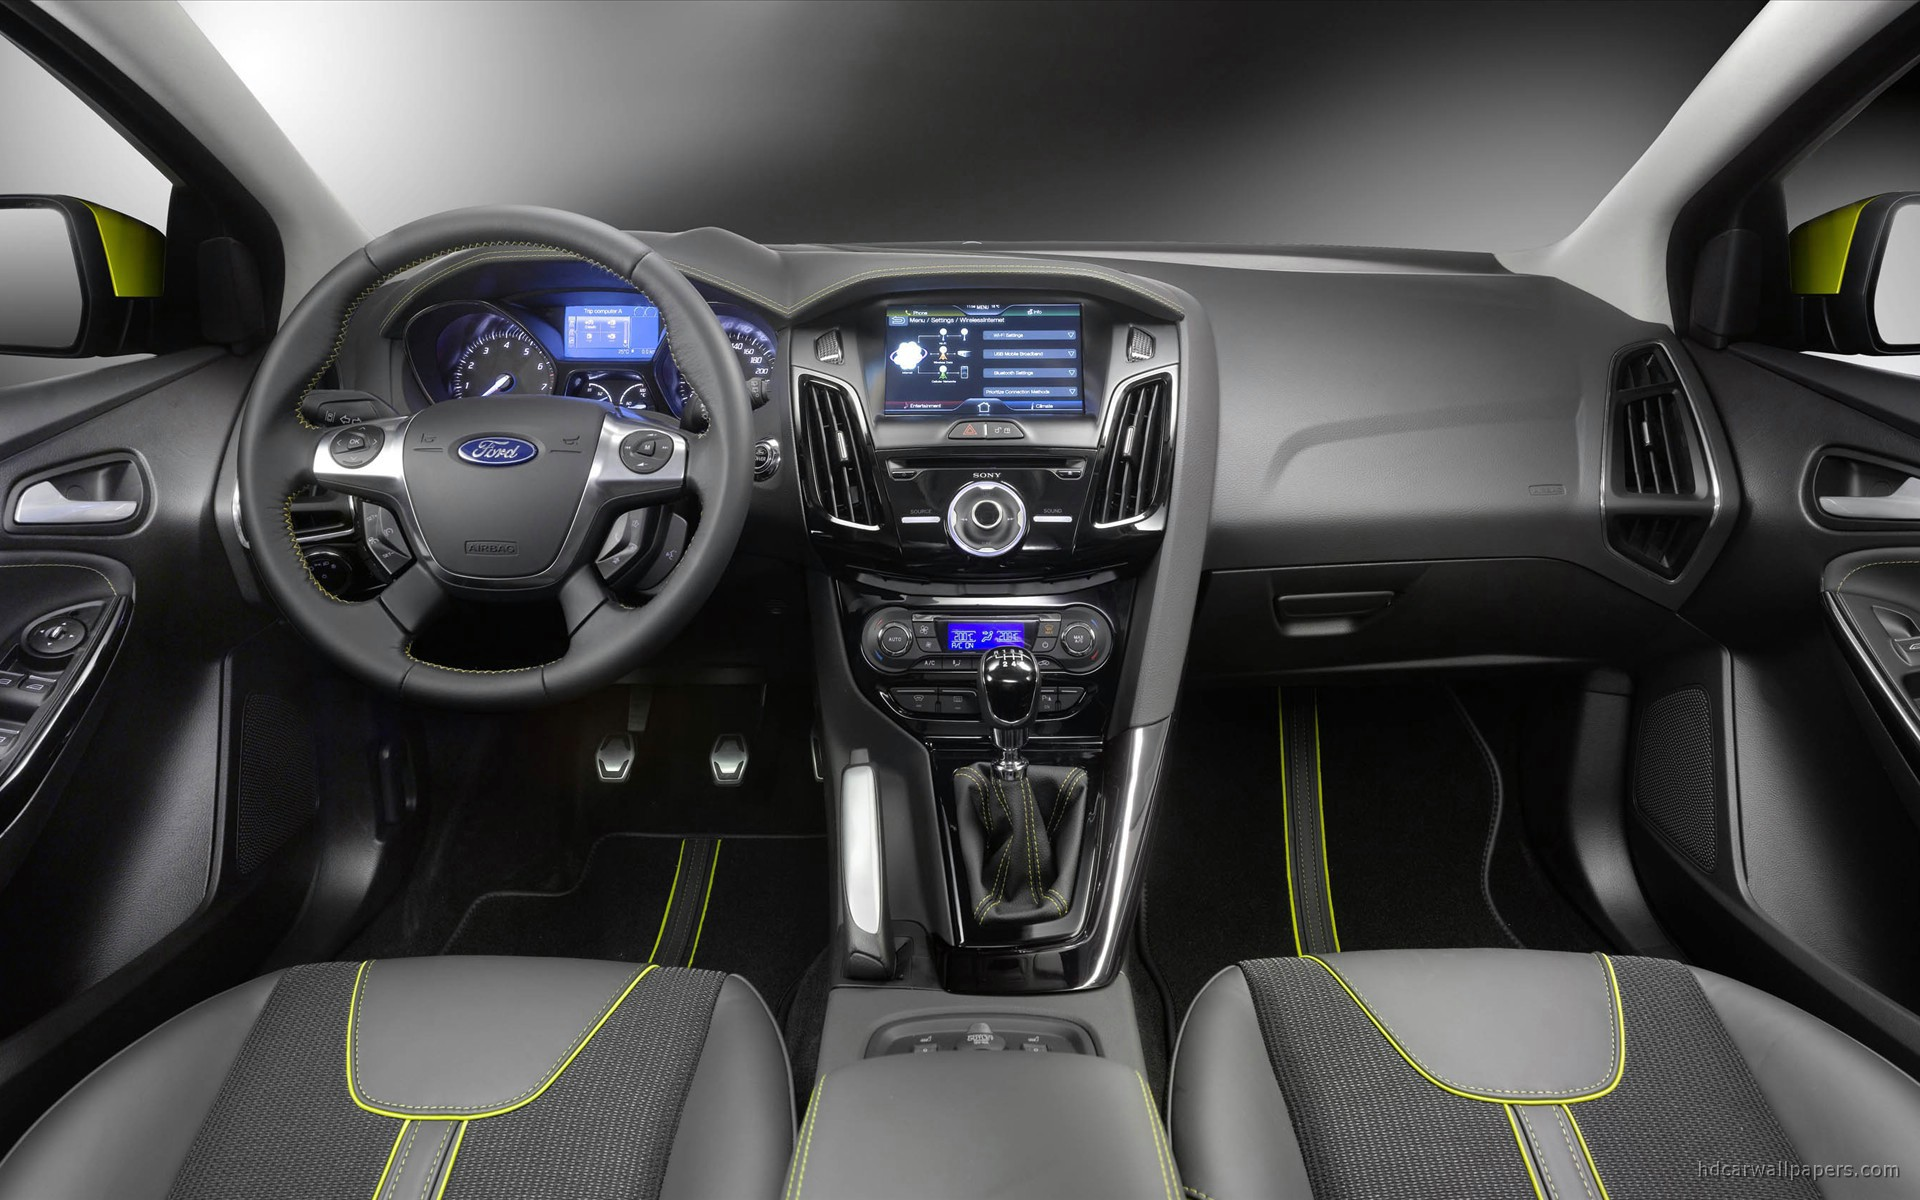 Ford Shelby Gt350r Interior >> 2011 Ford Focus Estate Interior Wallpaper | HD Car Wallpapers | ID #652